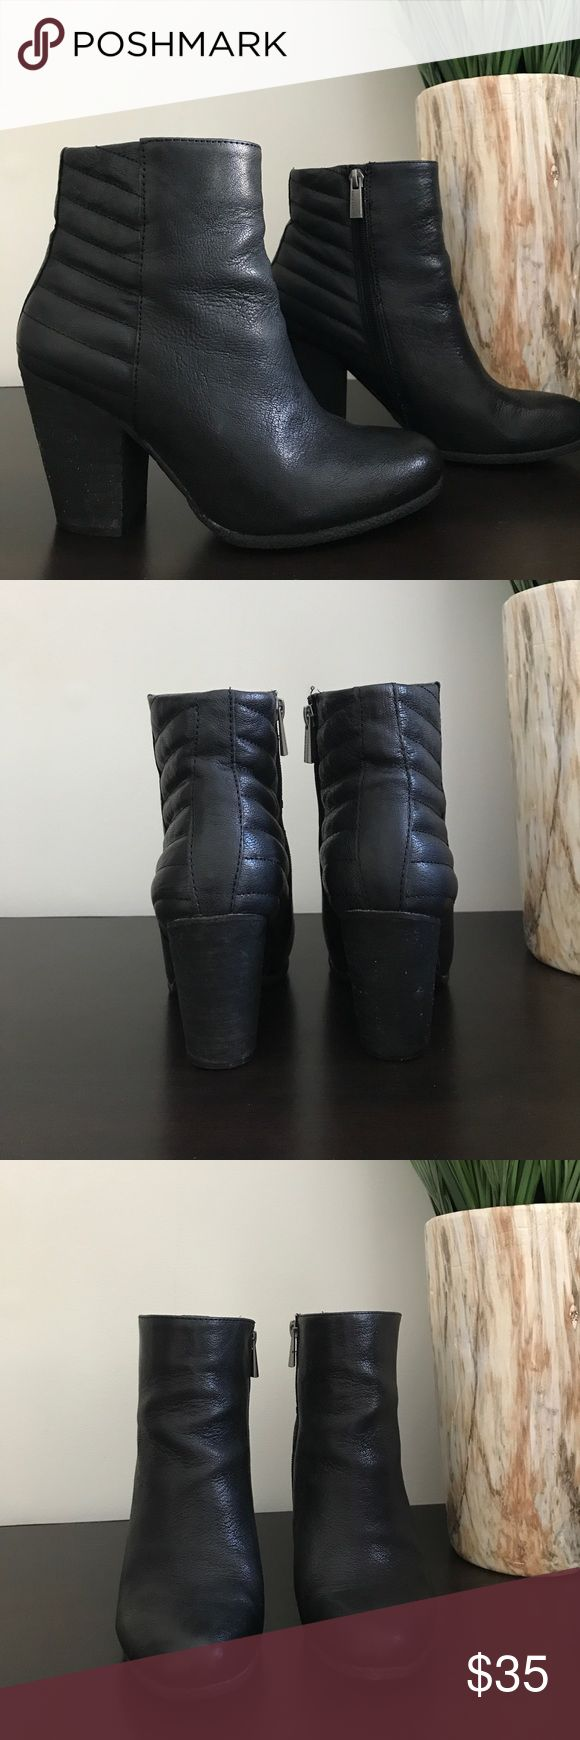 "Vince Camuto Black Leather Ankle Boots Vince Camuto black leather ankle boots. Worn a few times and they have a lot of life left in them! Heel measures 3.5"" Vince Camuto Shoes Ankle Boots & Booties"